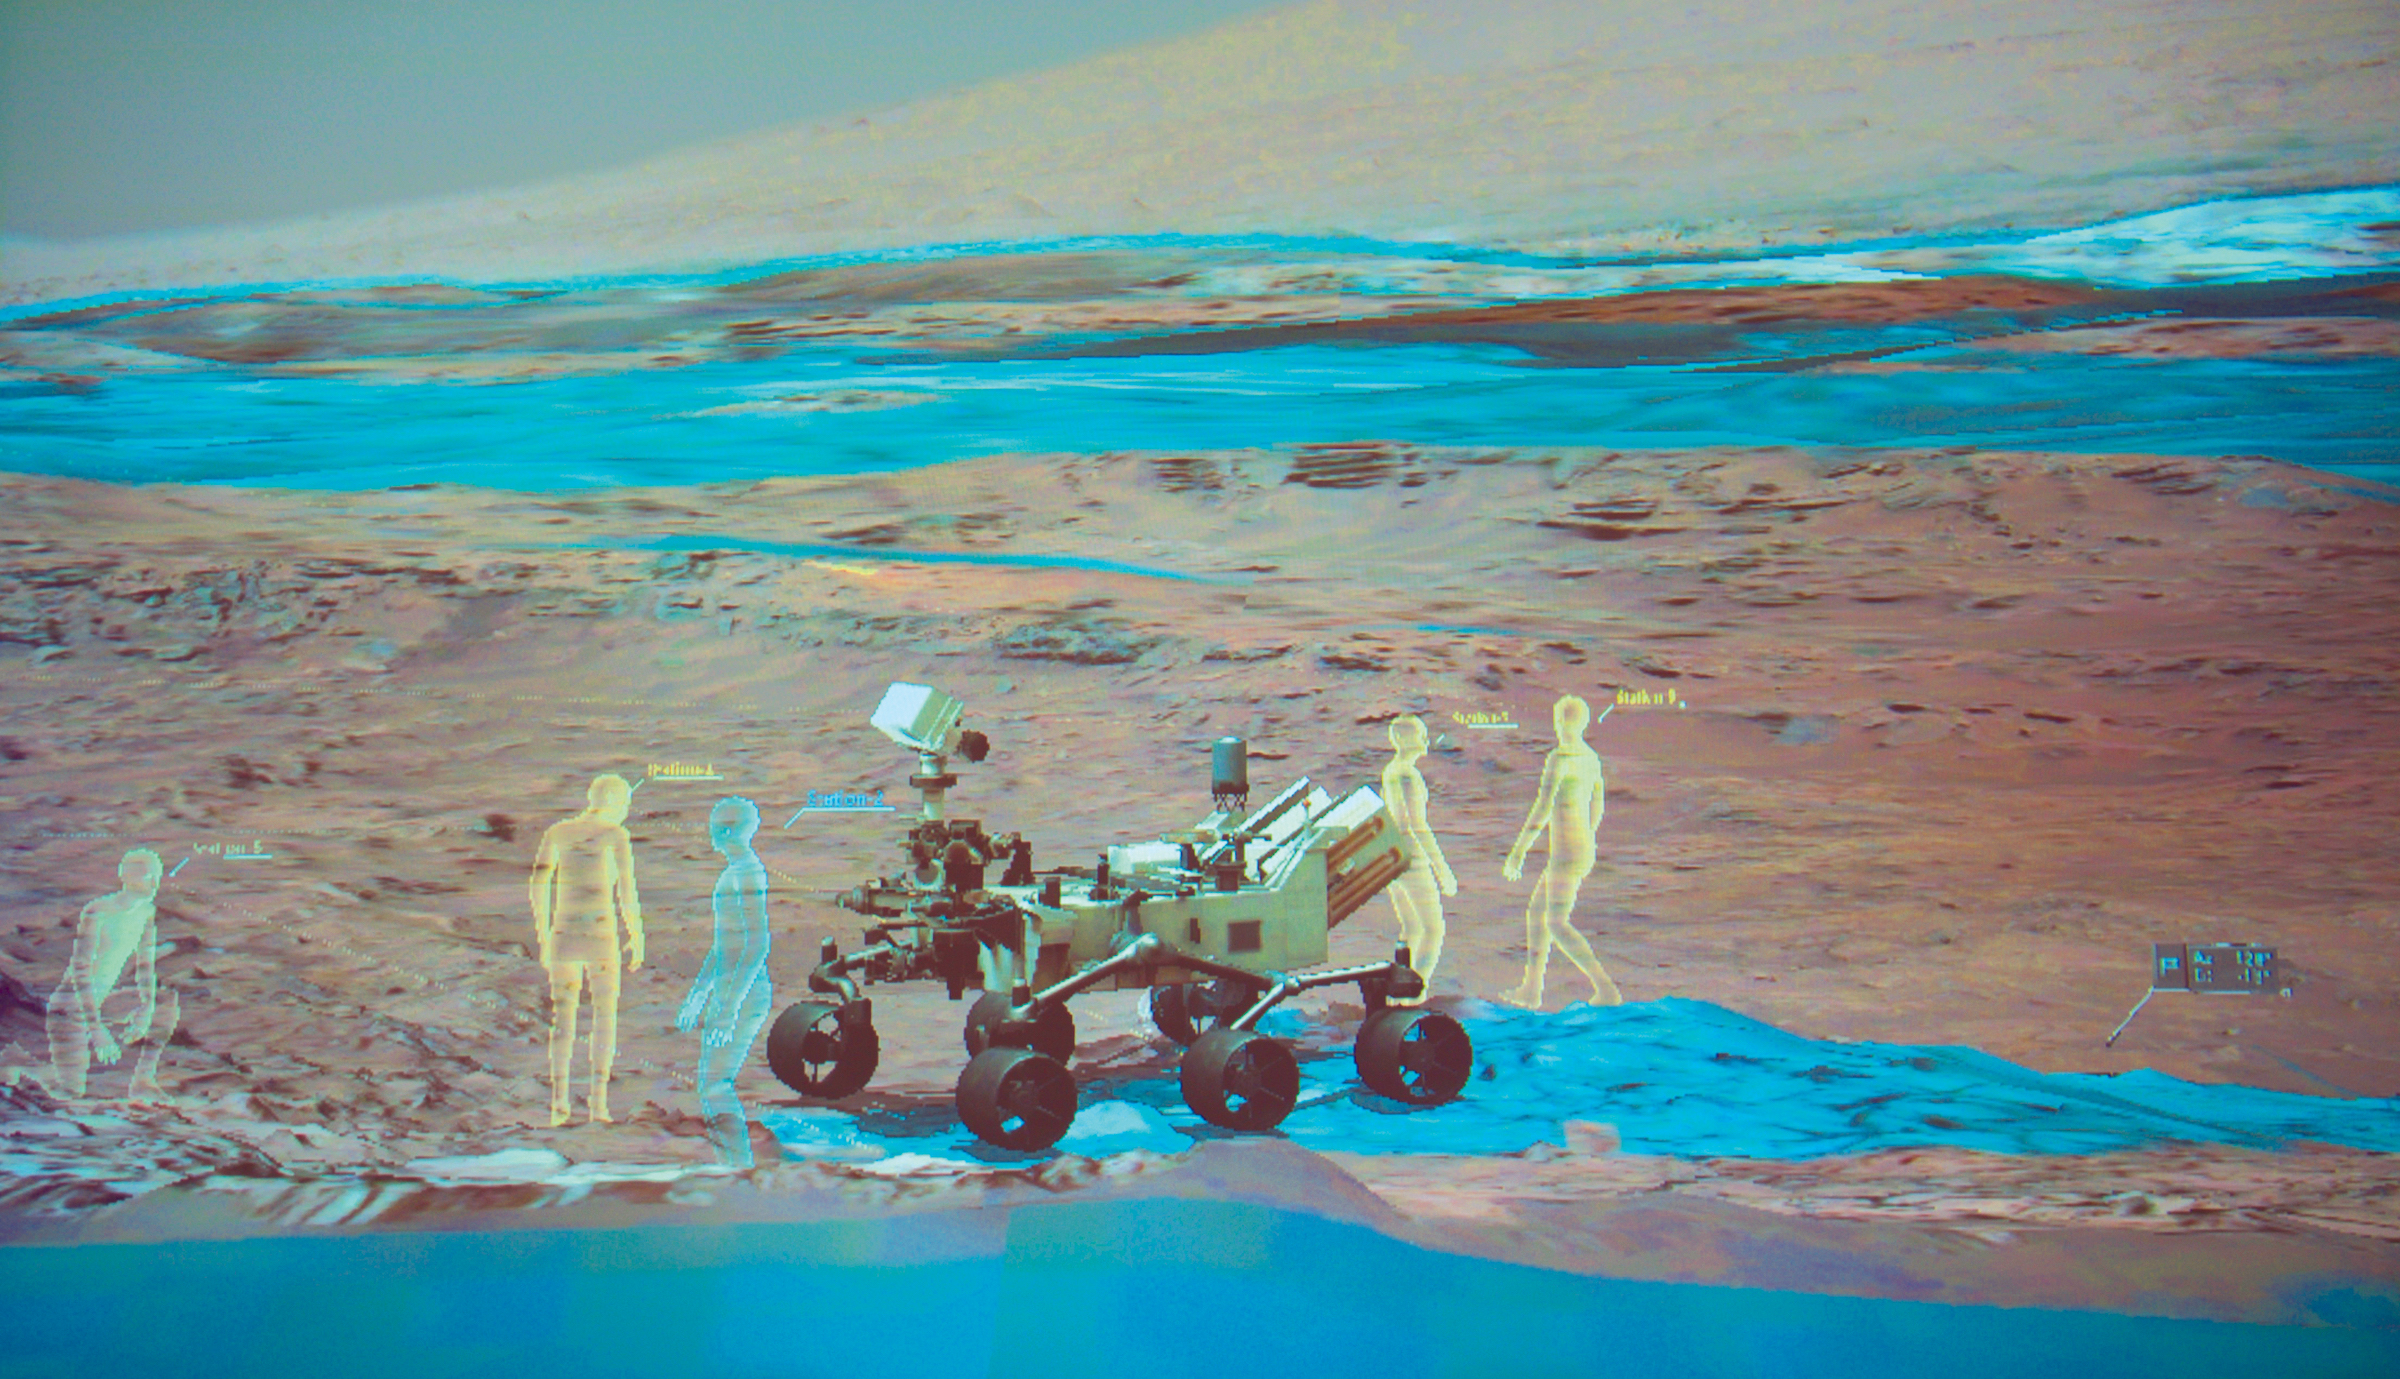 NASA Shapes the Future of Space Design and Exploration with its Mixed Reality Program